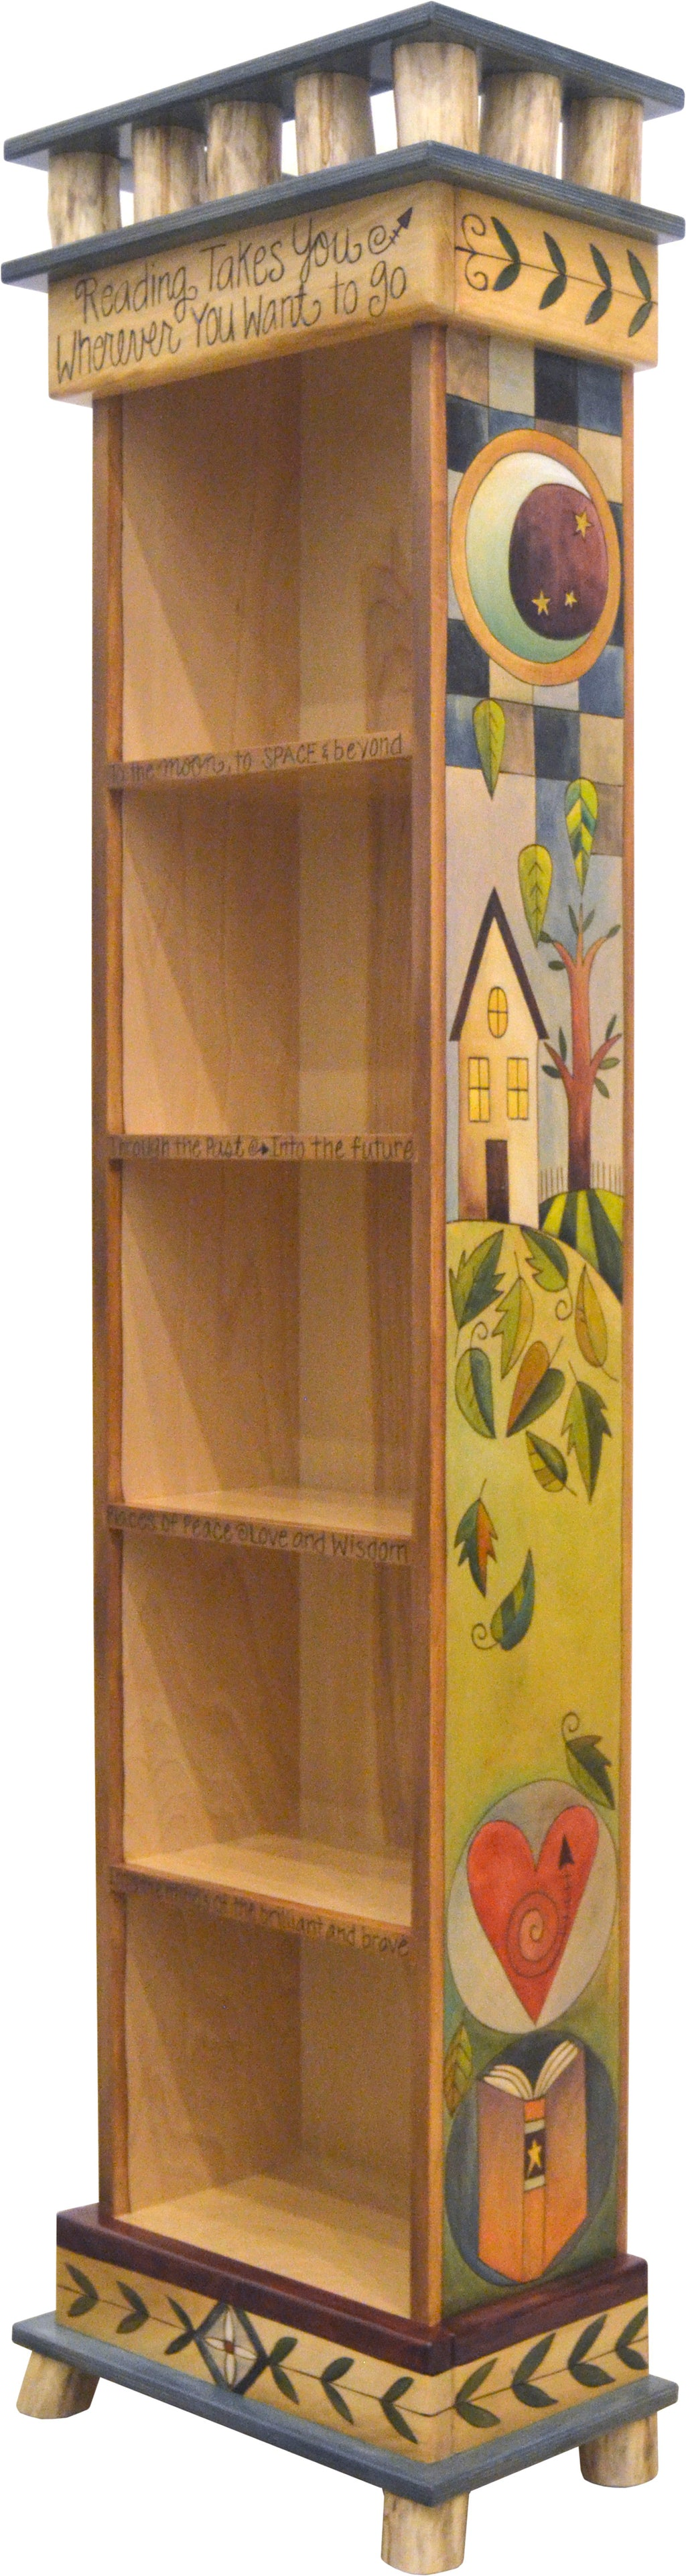 Beautiful bookcase with encircled icons, falling leaves, and blue patchwork accents